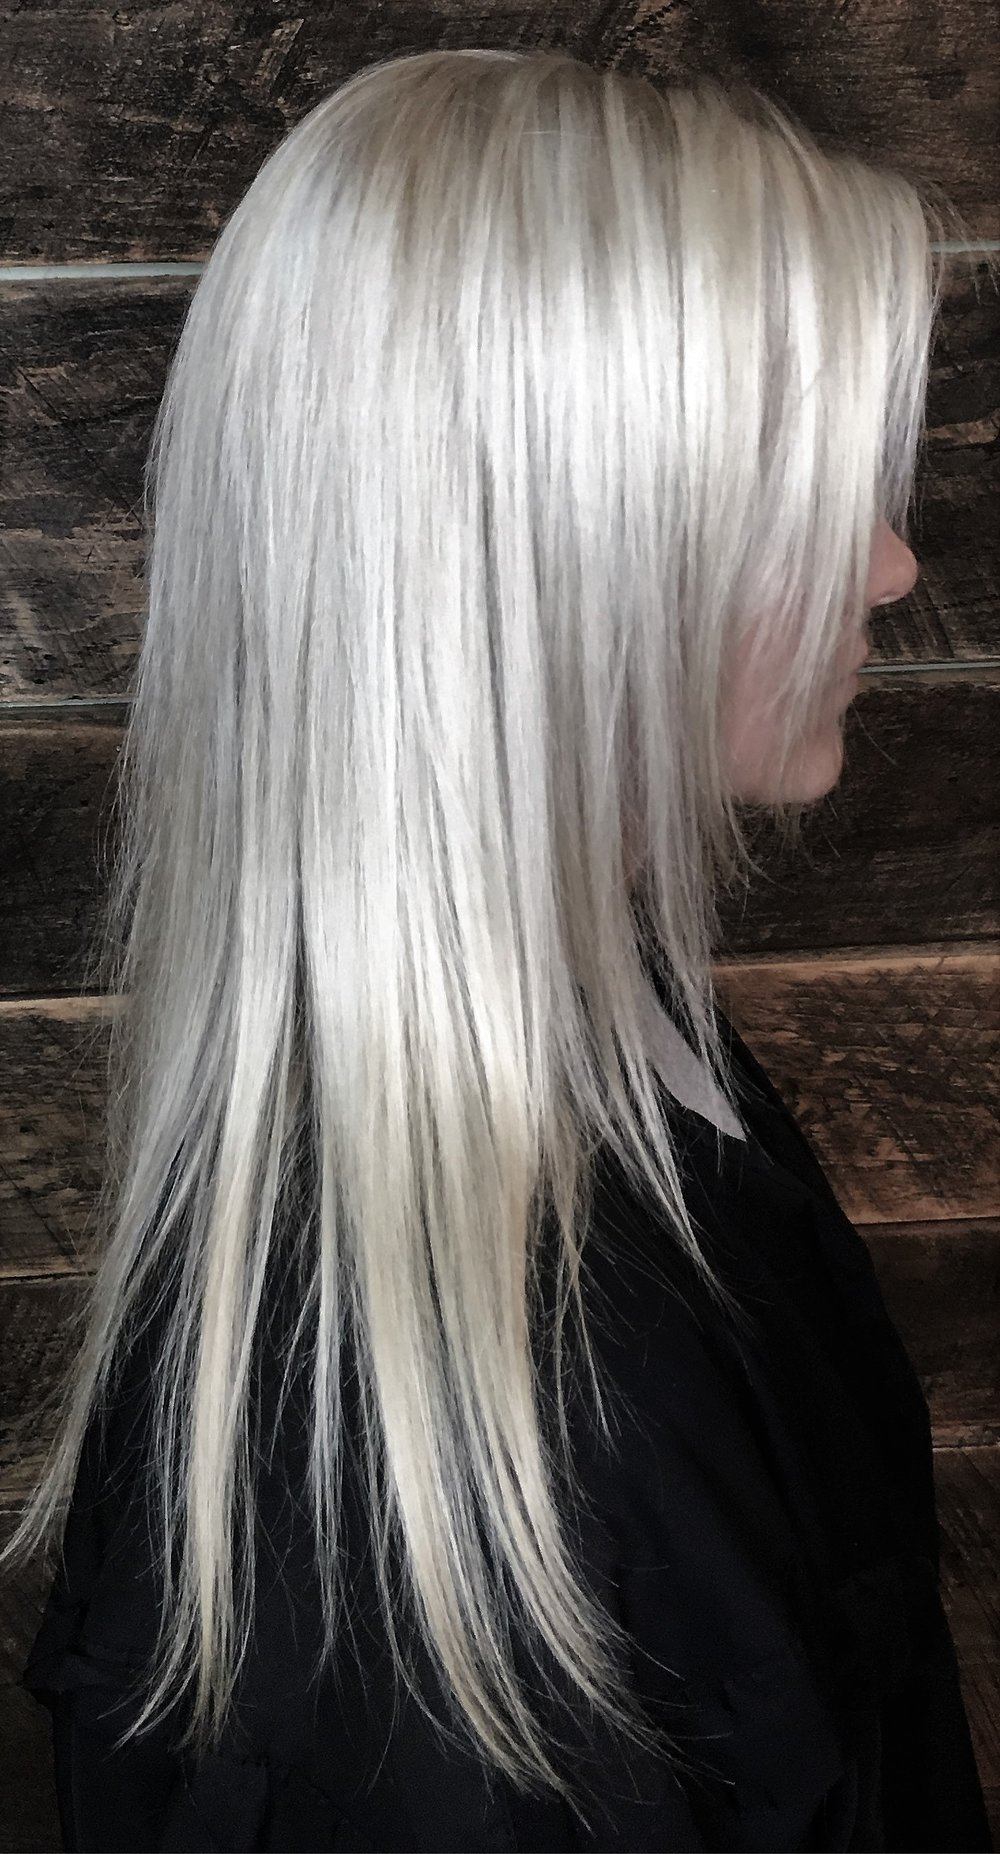 Hair By: Monica P. Watkins Hair Babe Studio Asheville NC  Smoky Frozen Blonde  Ashe is in, and this smoke-tinted take on frozen blonde is dreamy.